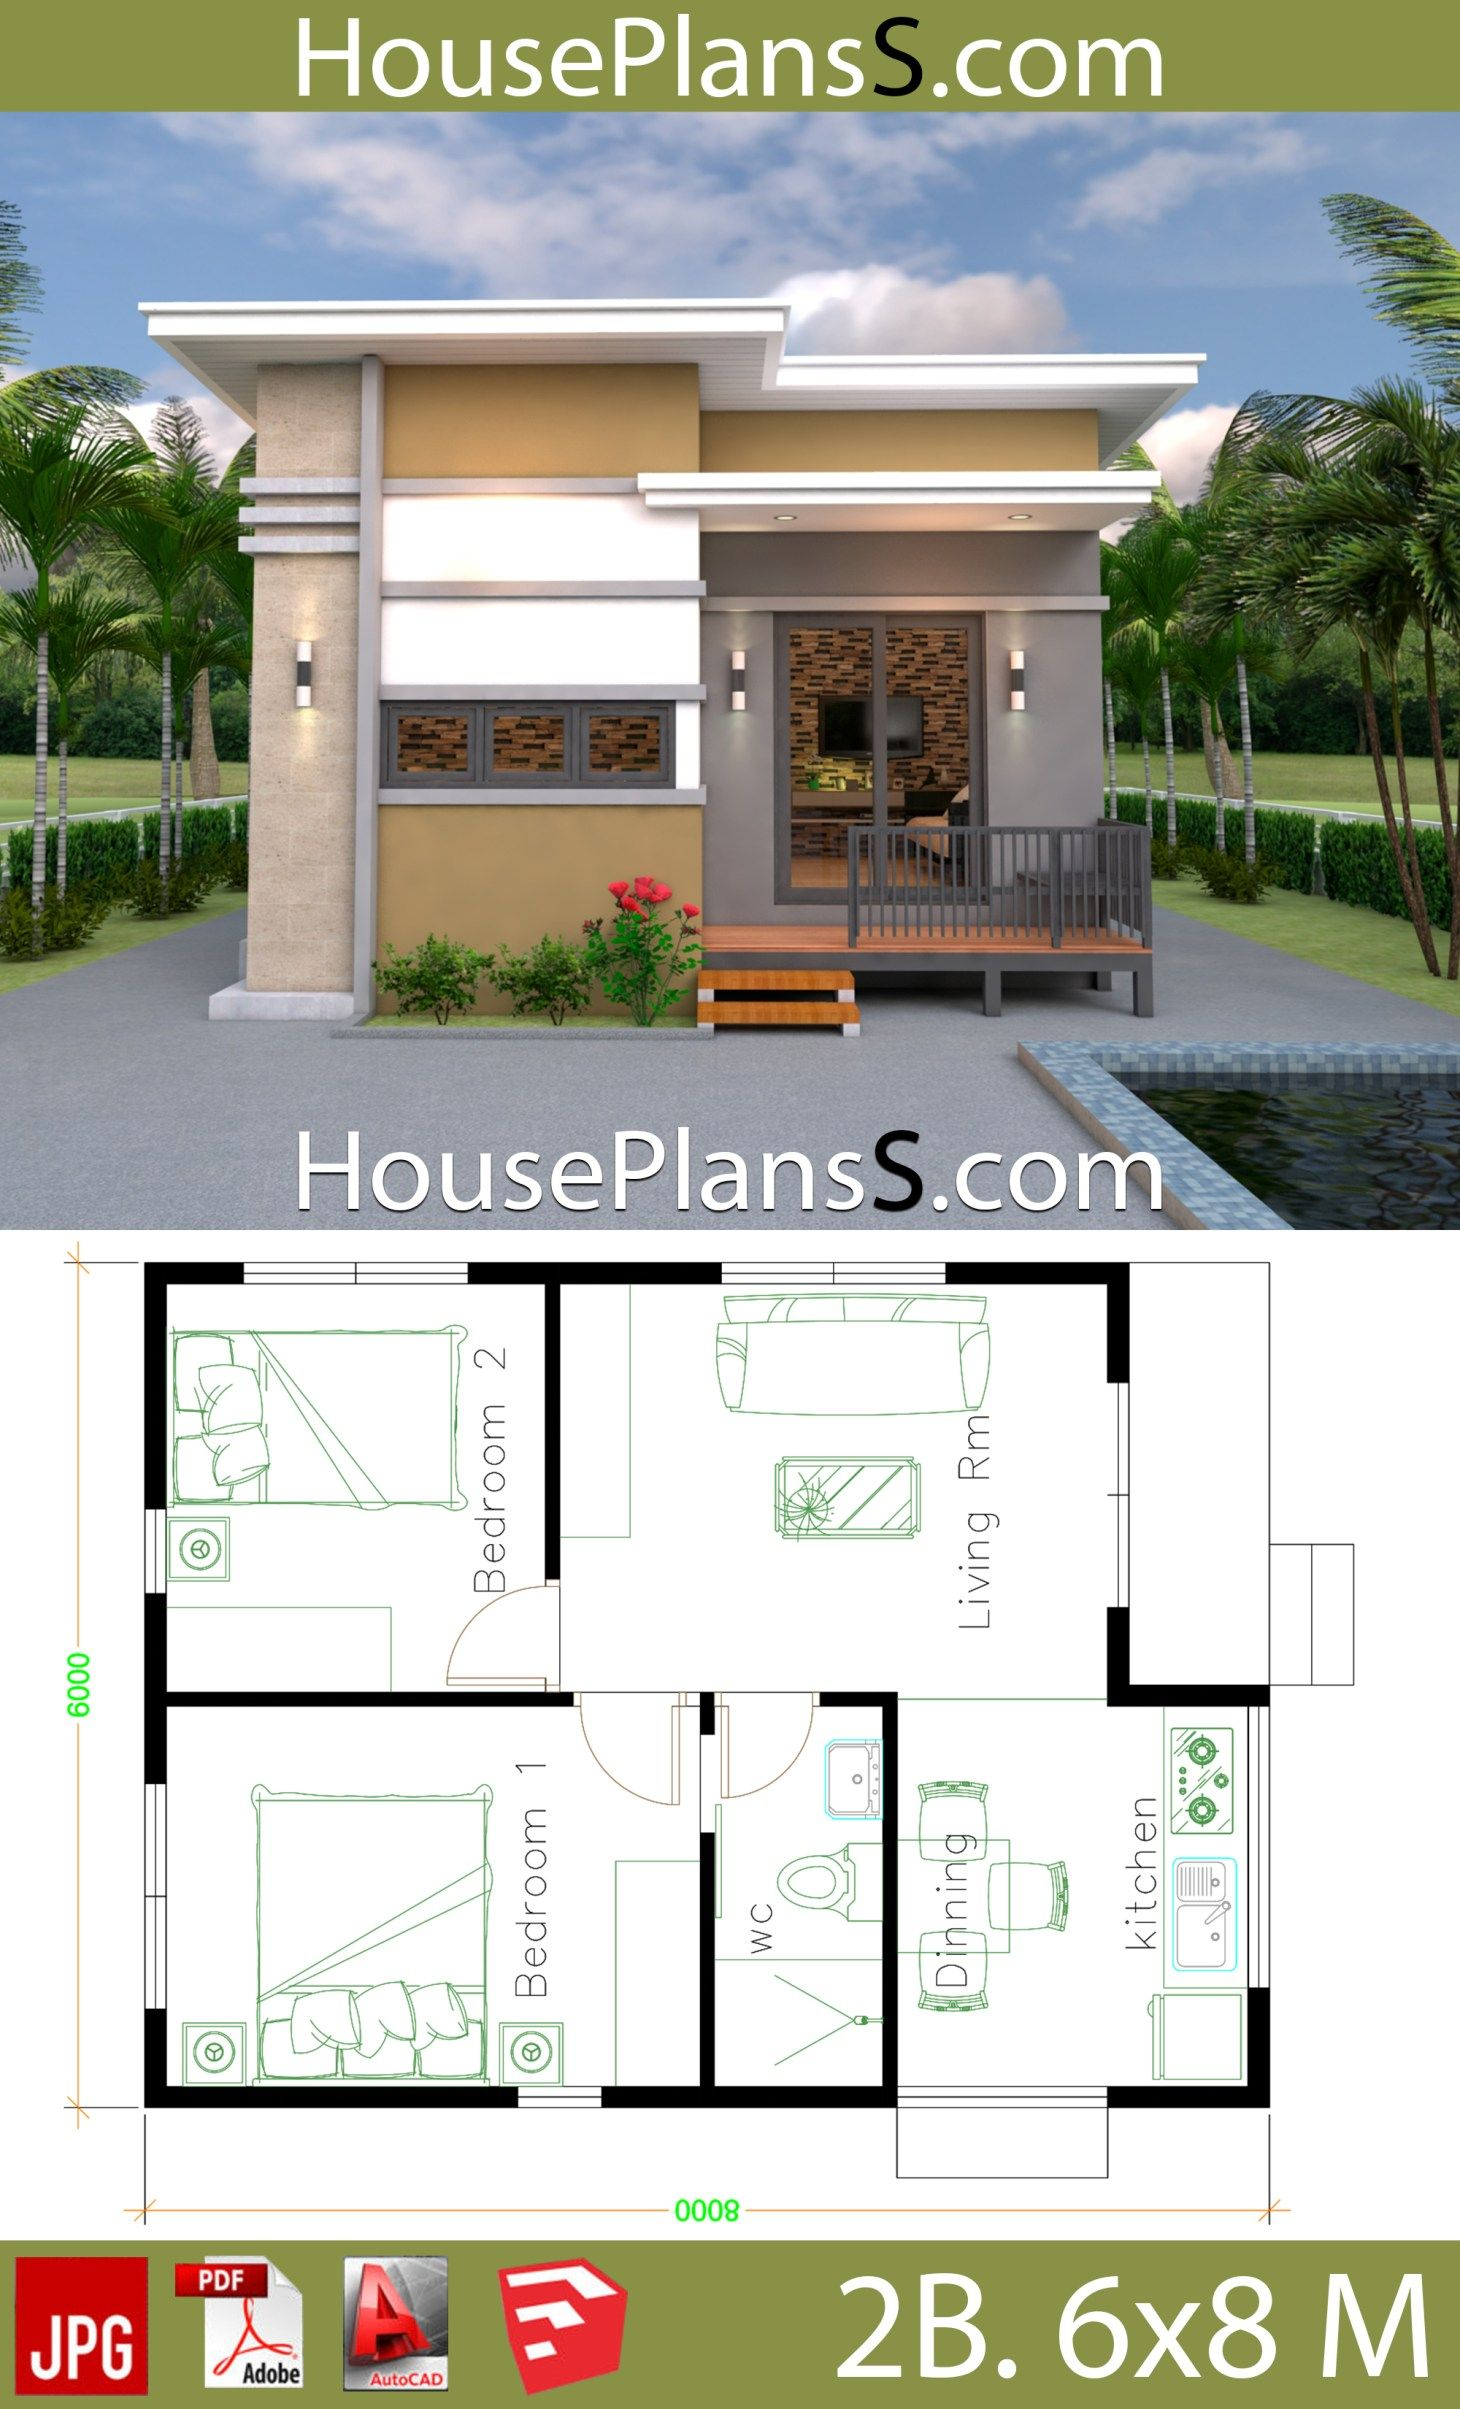 Small House Design Plans 6x8 With 2 Bedrooms House Plans 3d Small House Design Plans House Design Photos House Design Pictures